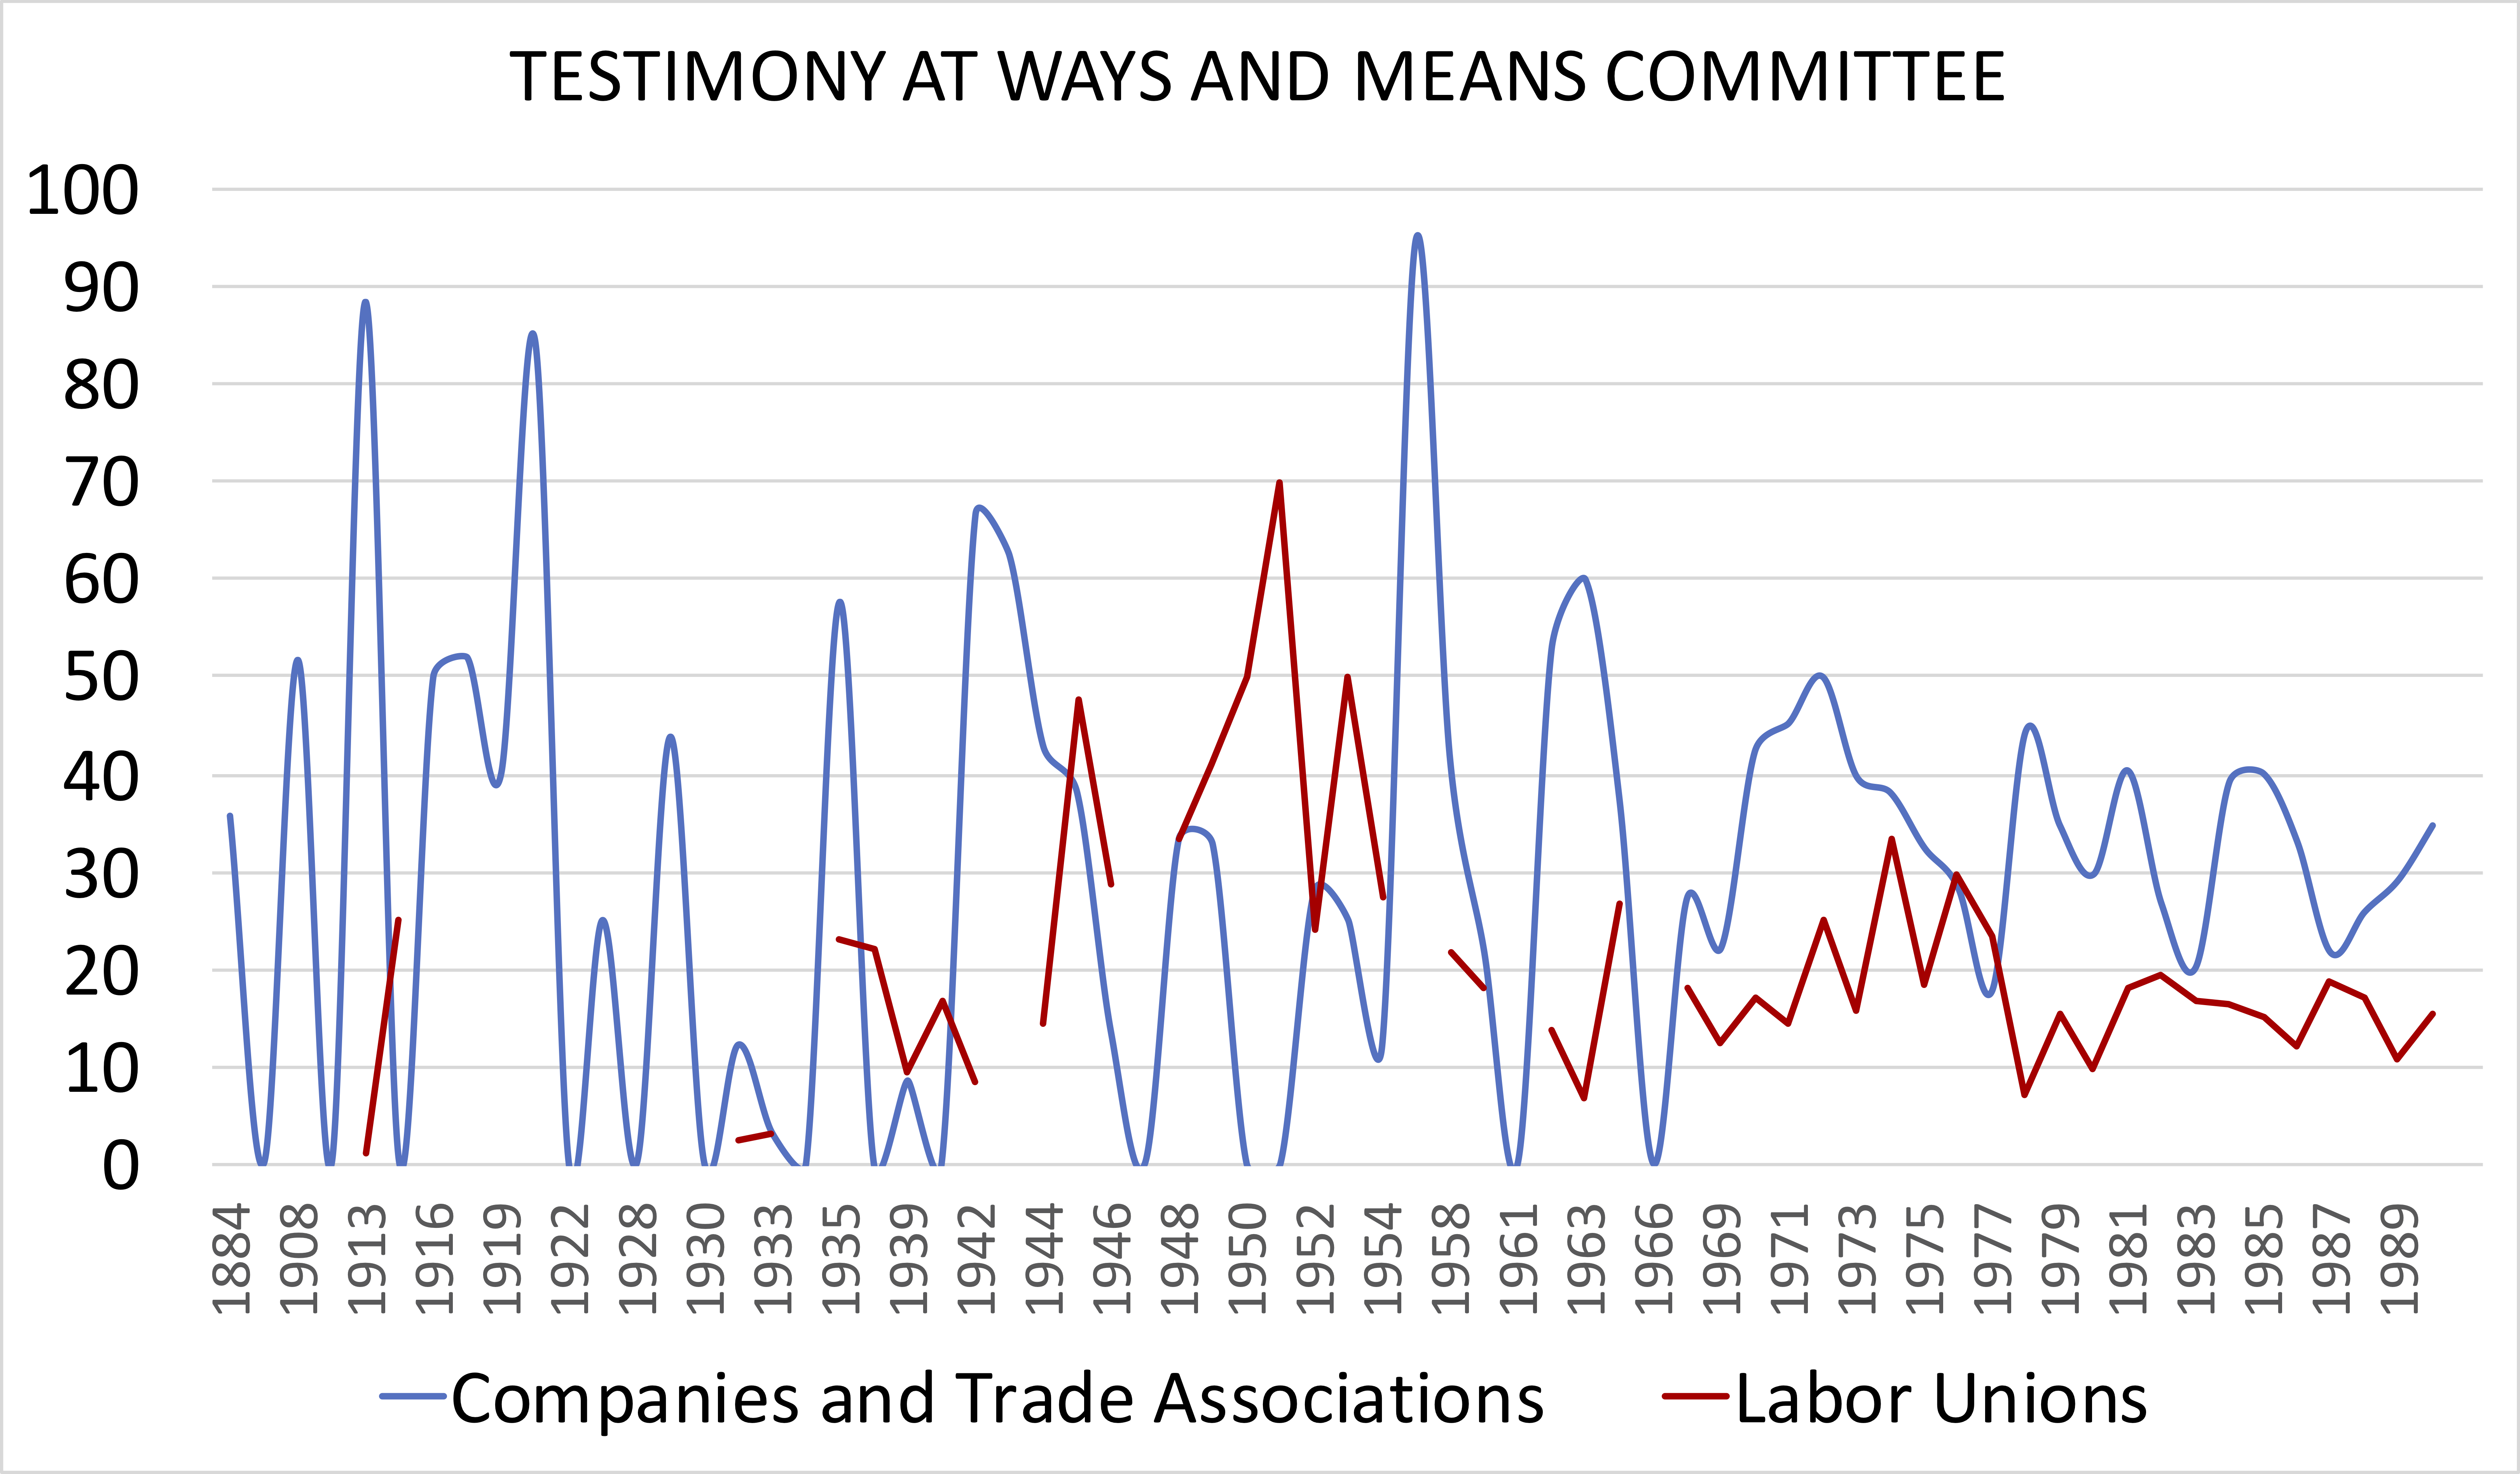 Line graph showing representation of companies and trade associations vs. labor unions at the Ways and Means Committee from eighteen eighty-eight to nineteen ninety.